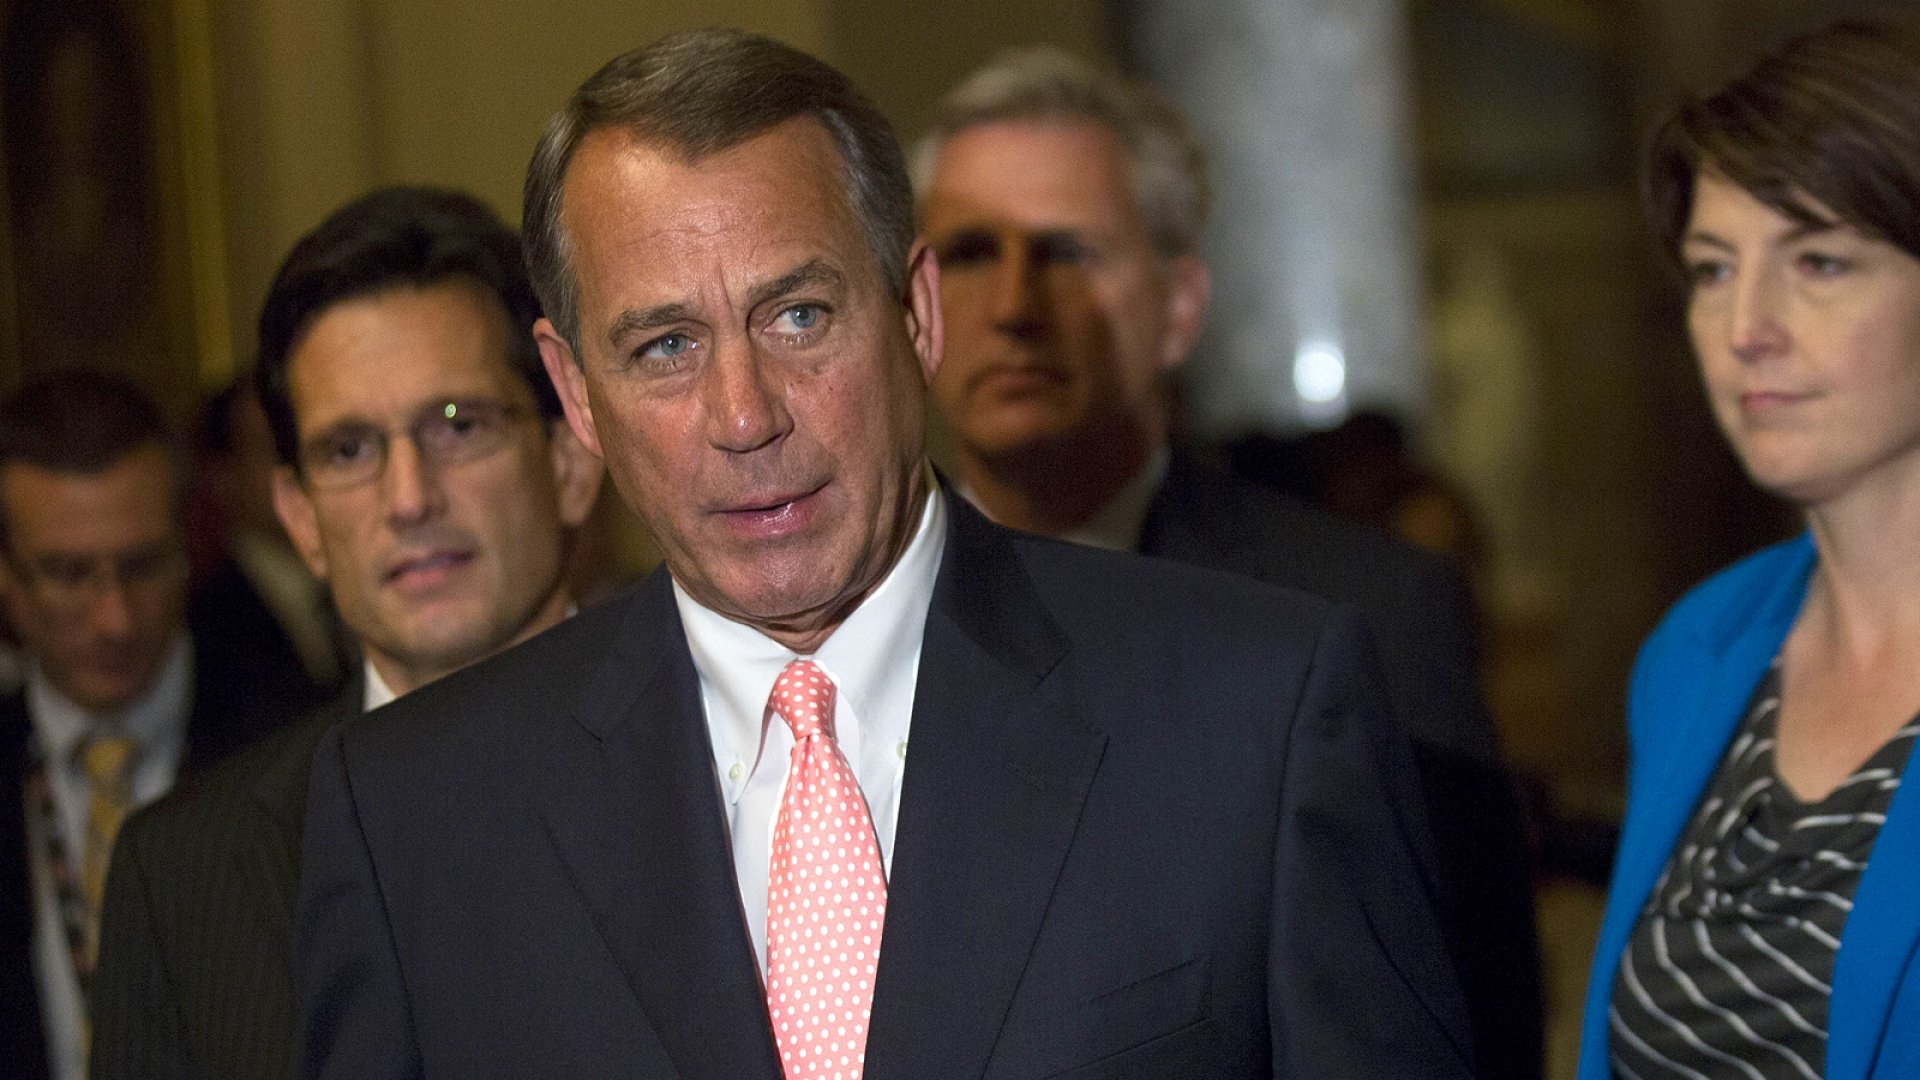 Leadership Lessons From a Dysfunctional Congress